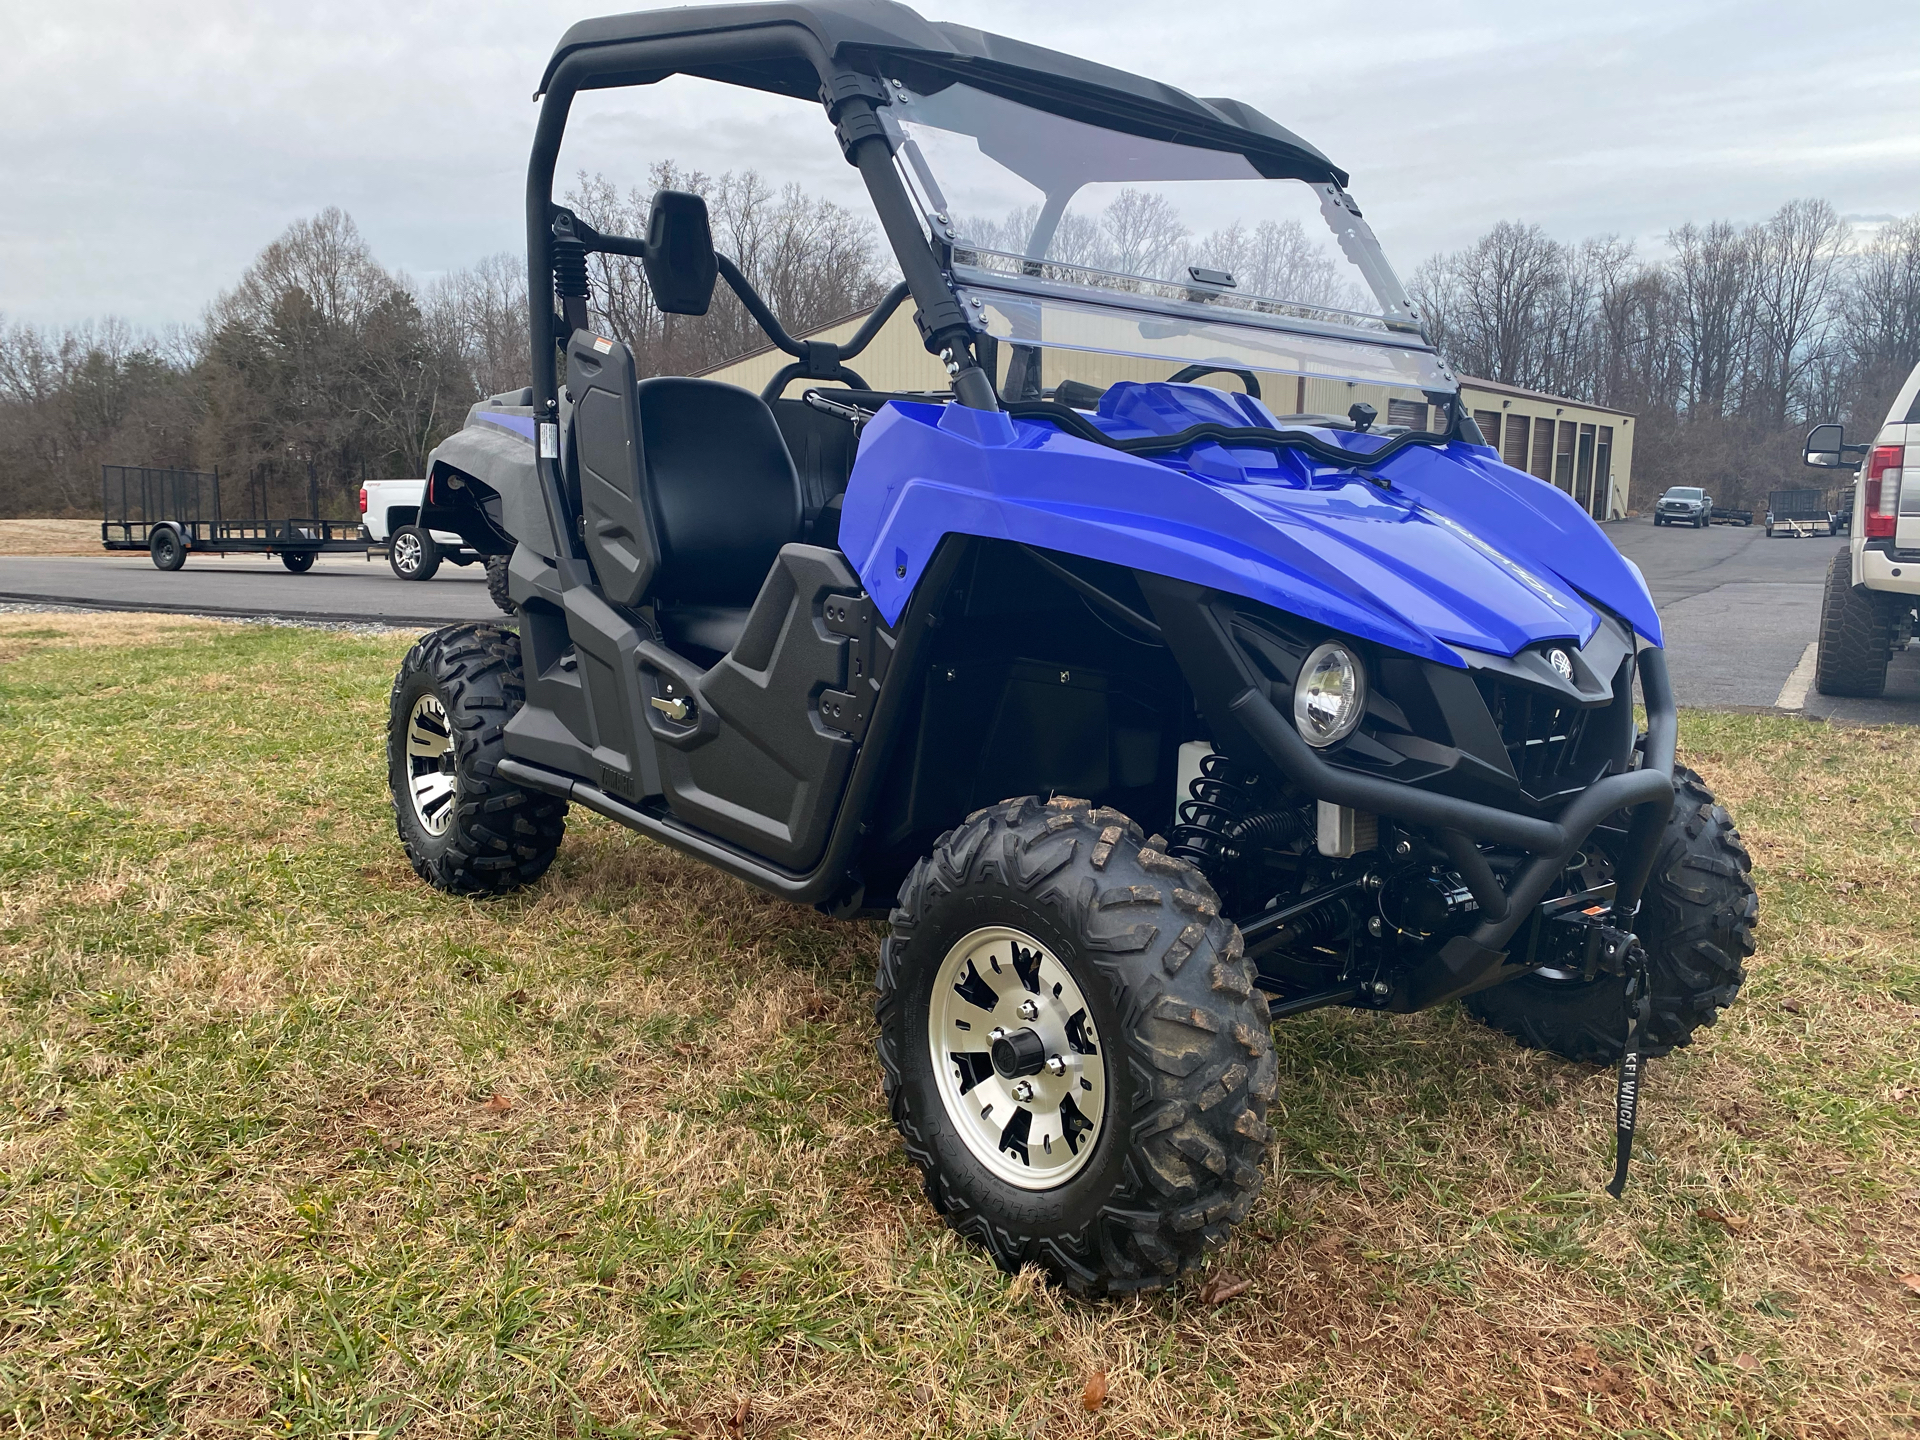 2017 Yamaha Wolverine EPS in Statesville, North Carolina - Photo 3